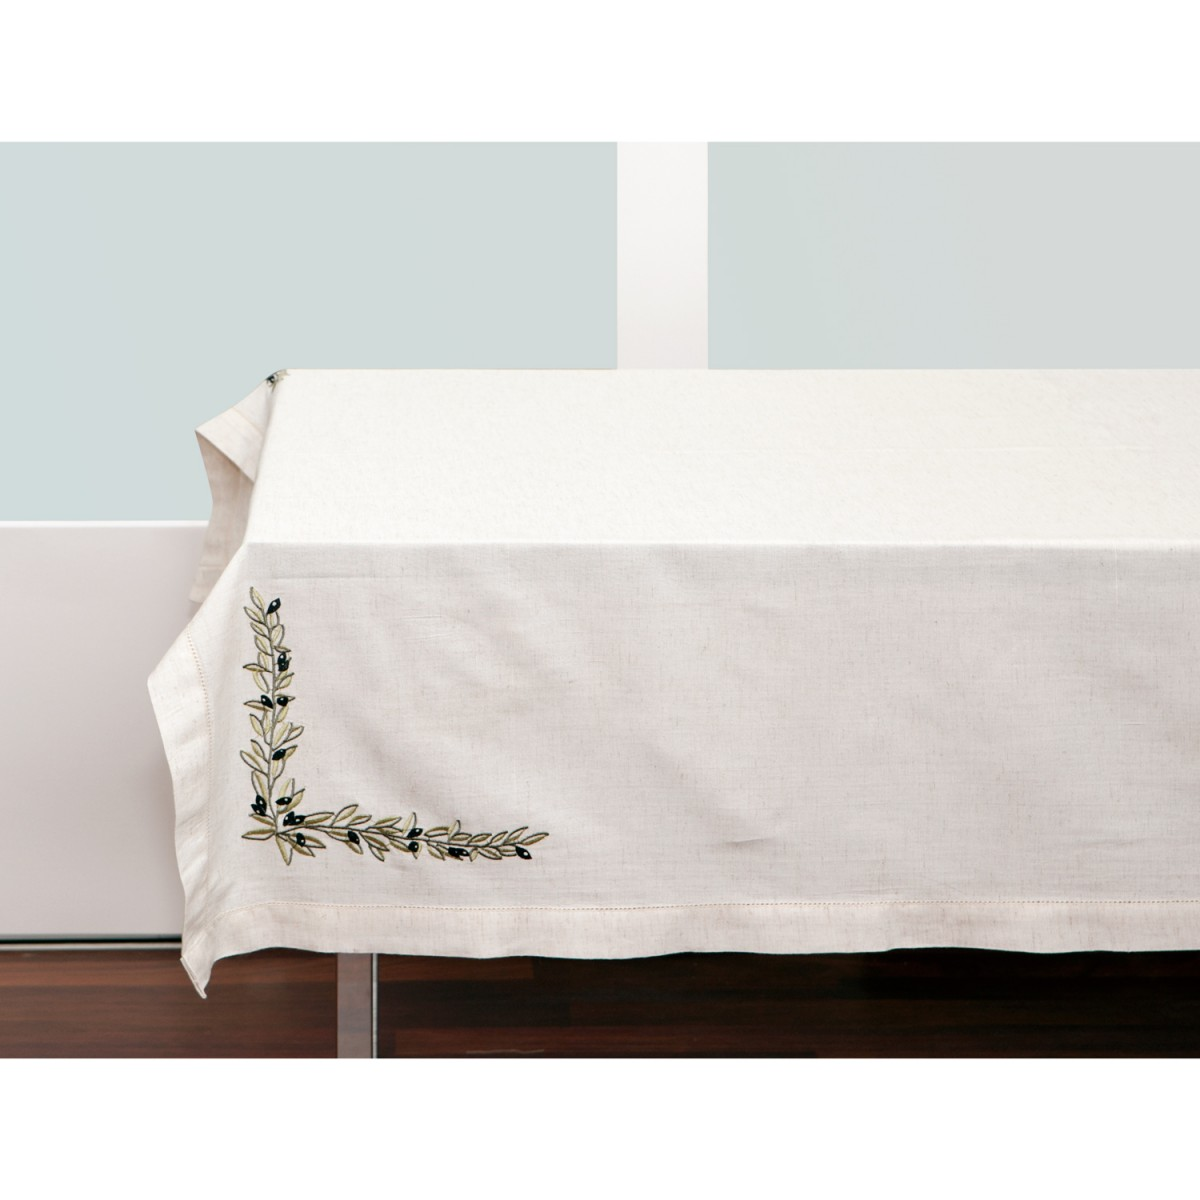 Embroidered Olives Linen Tablecloth-1